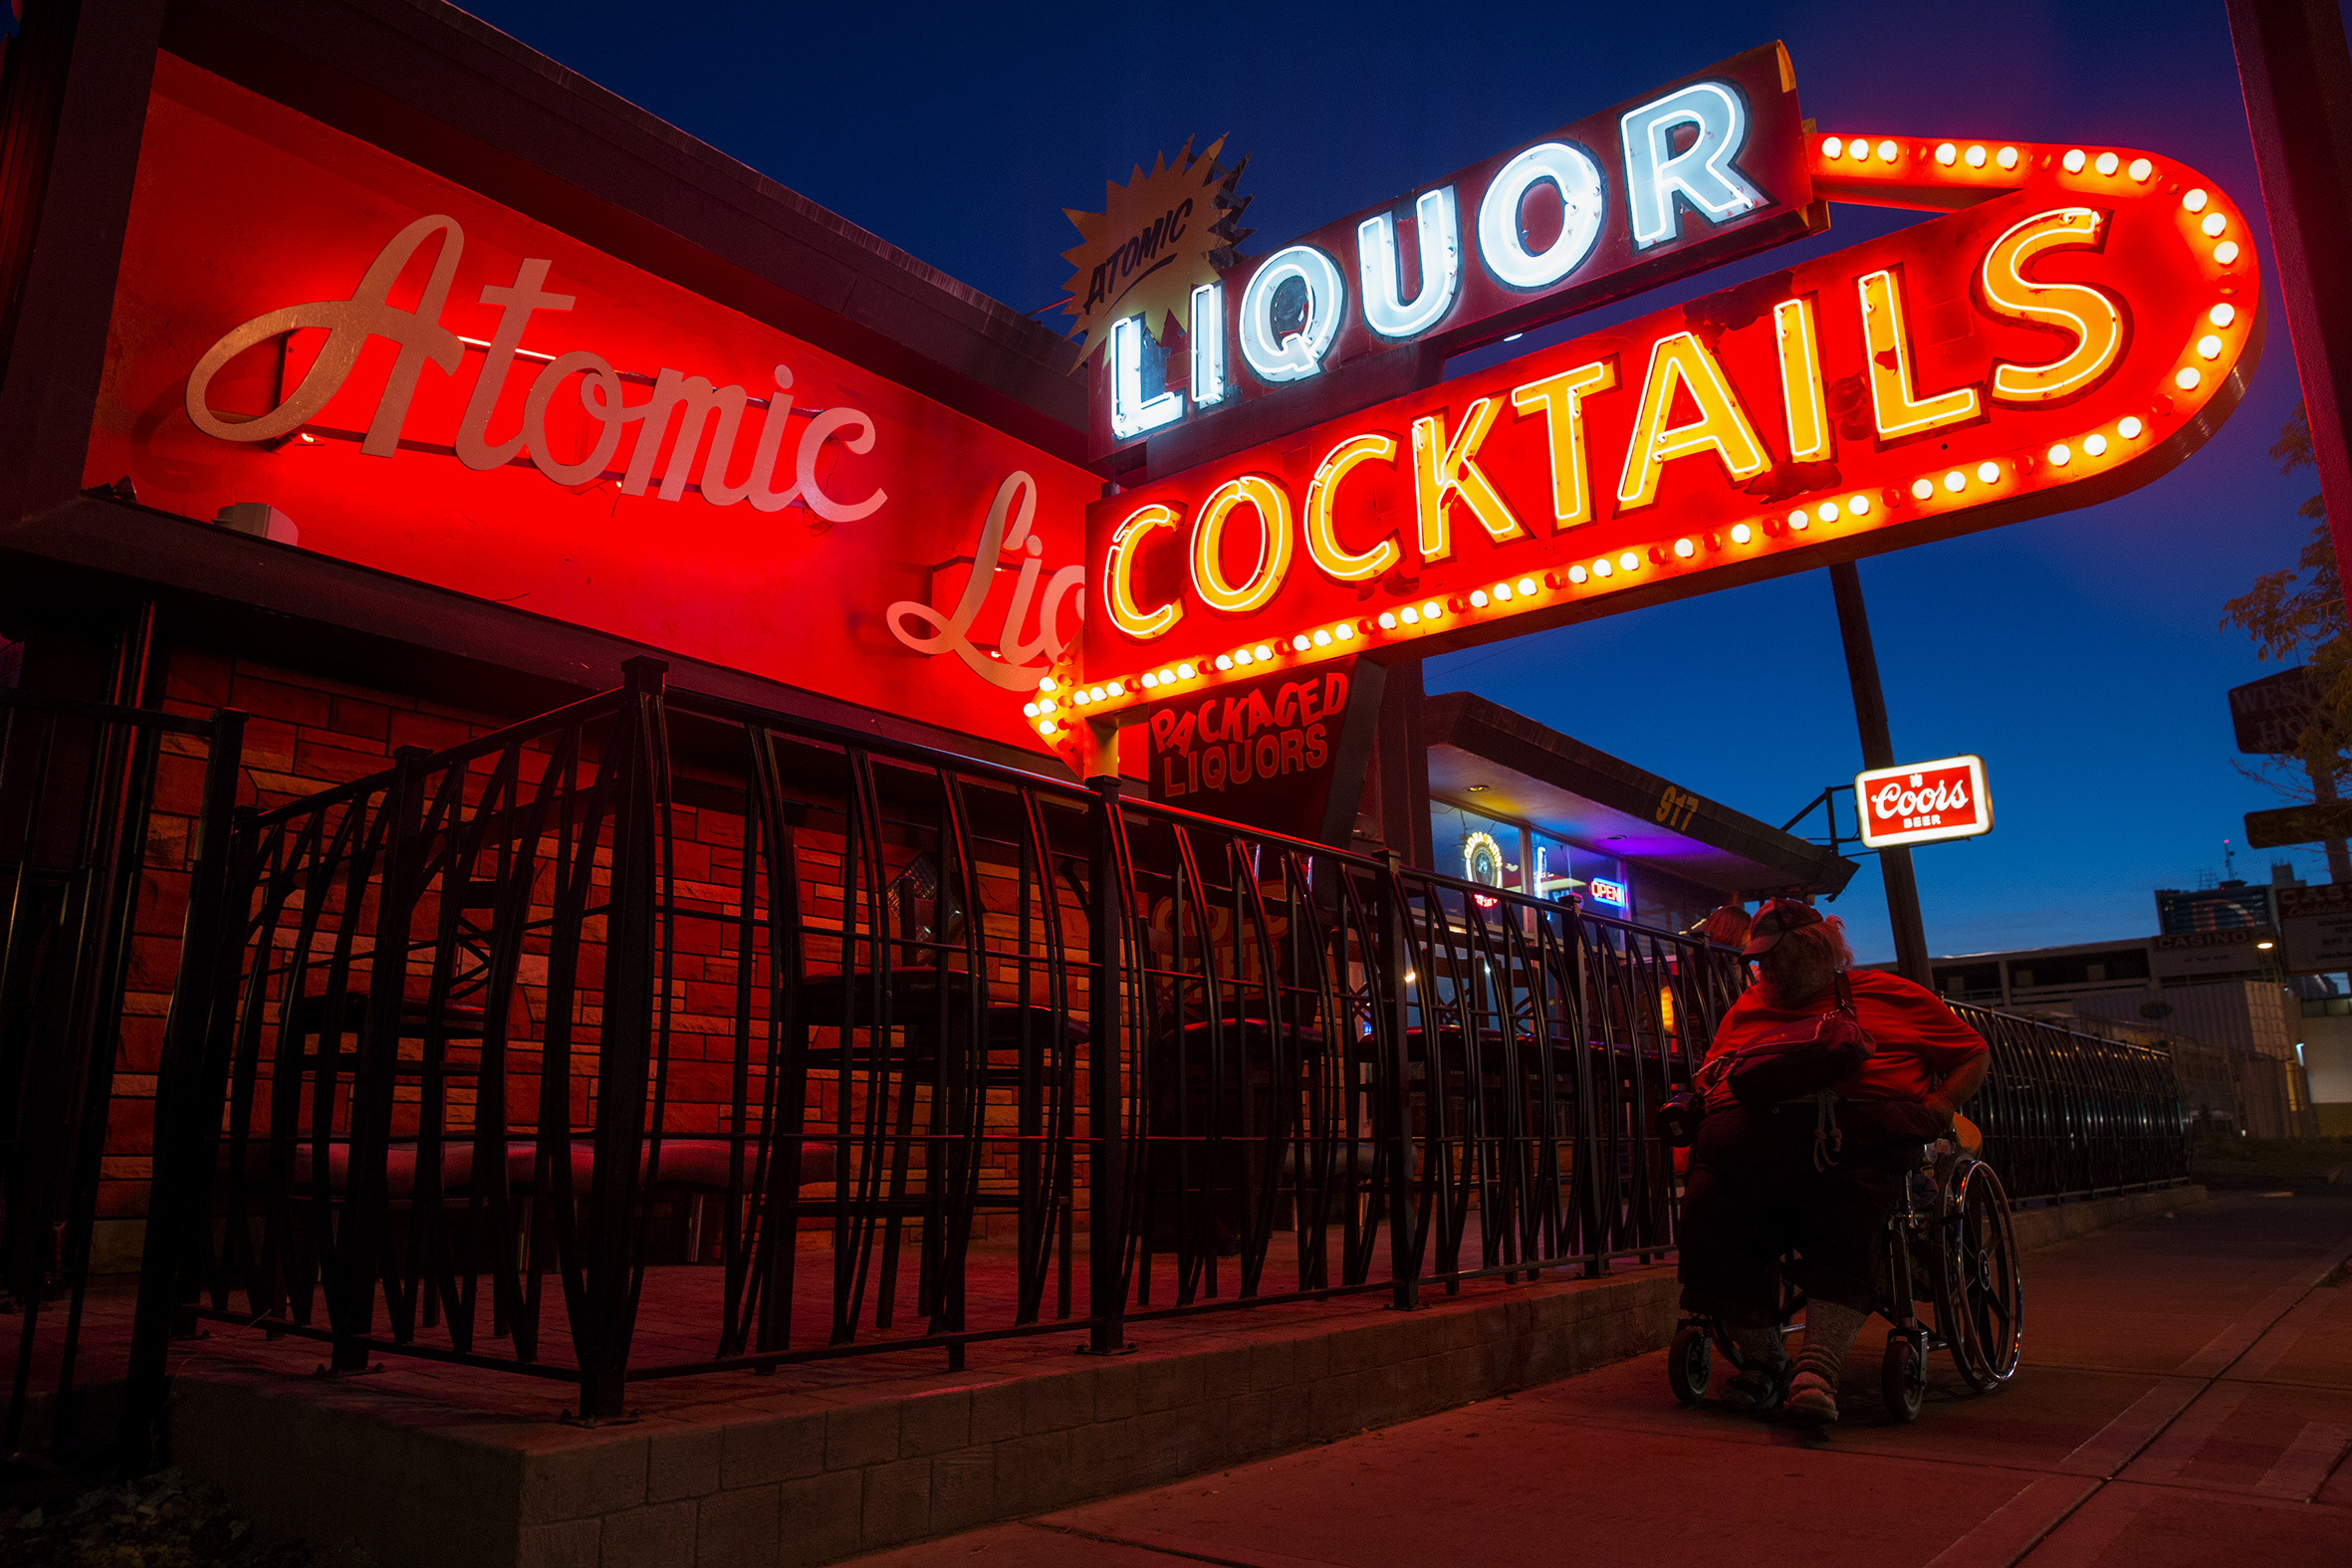 Illustrations | Atomic Liquor Cocktails, Las Vegas